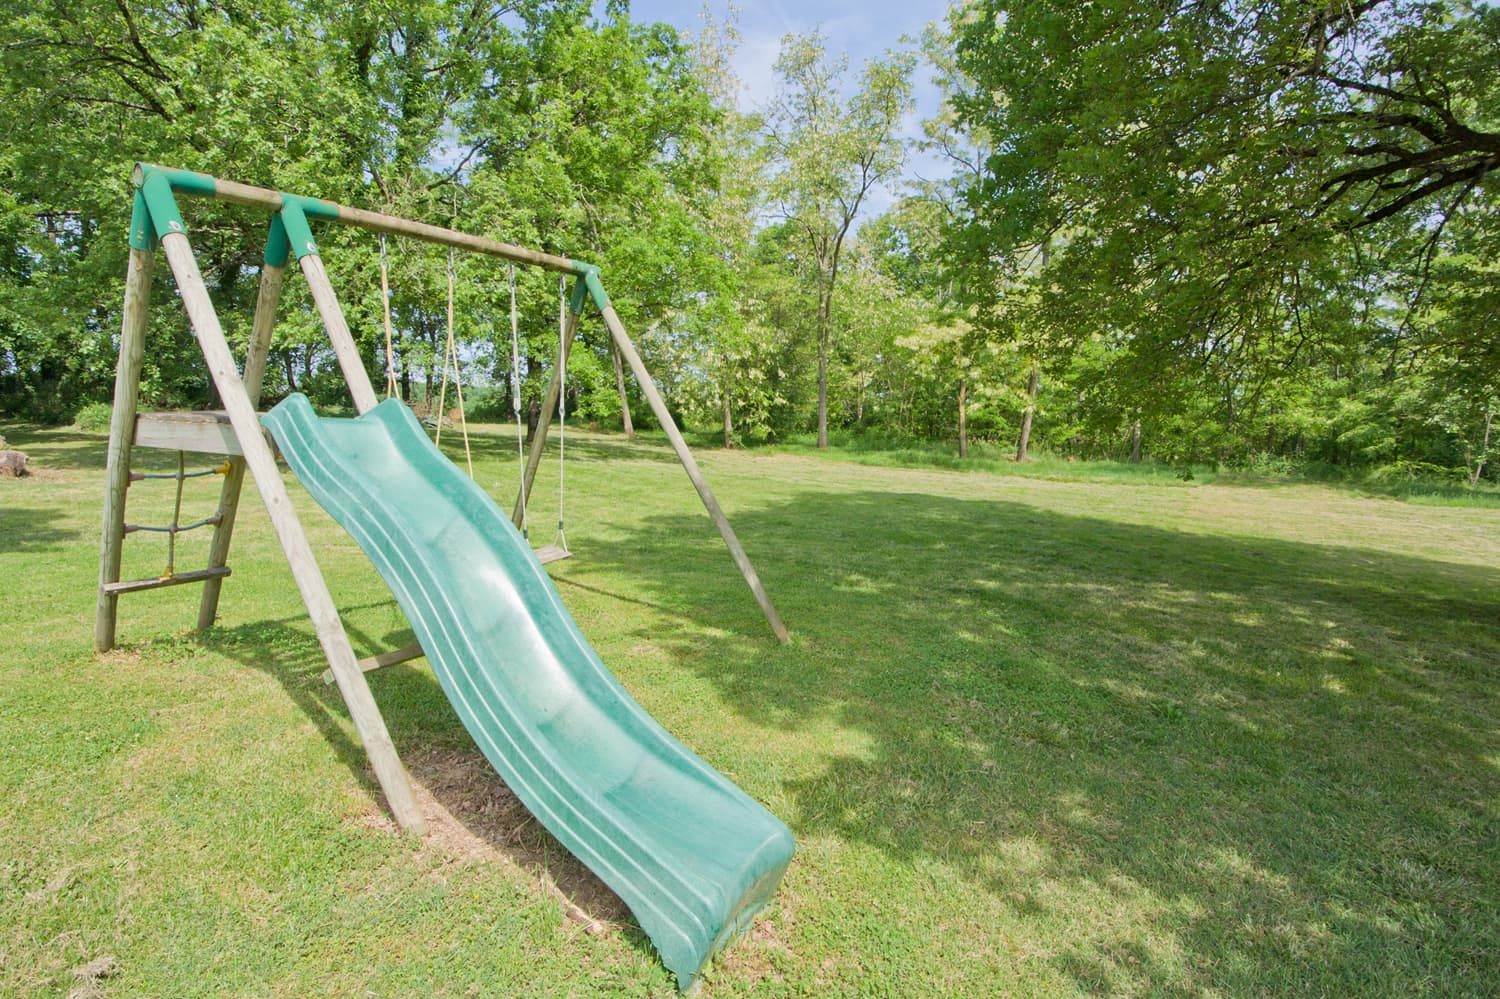 Lawned garden with slide and swings